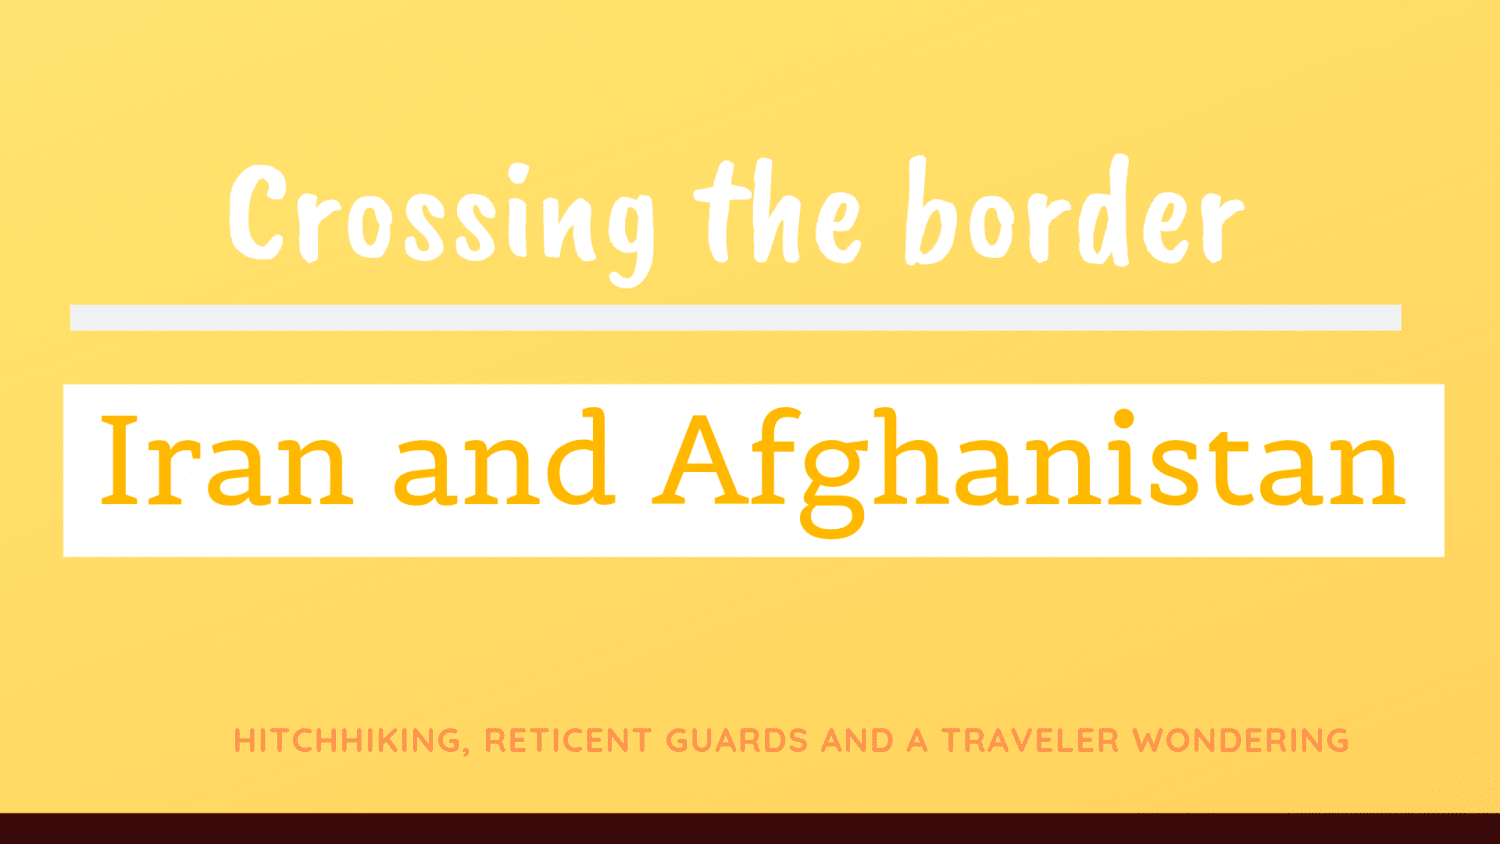 Crossing the border between Iran and Afghanistan